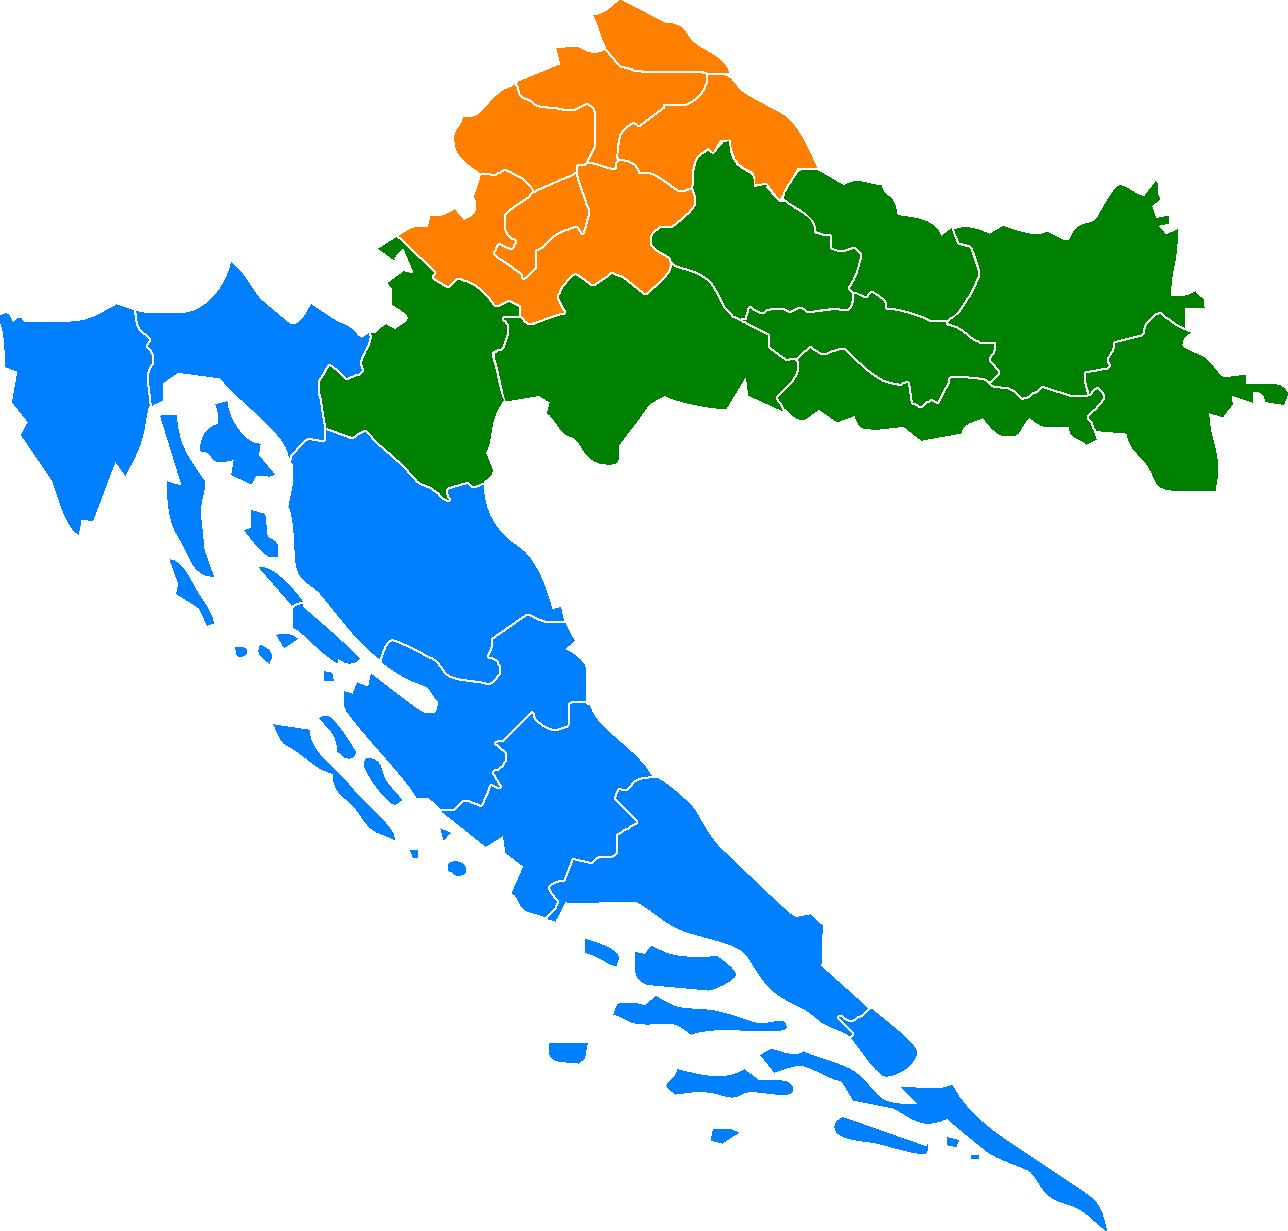 NUTS of Croatia